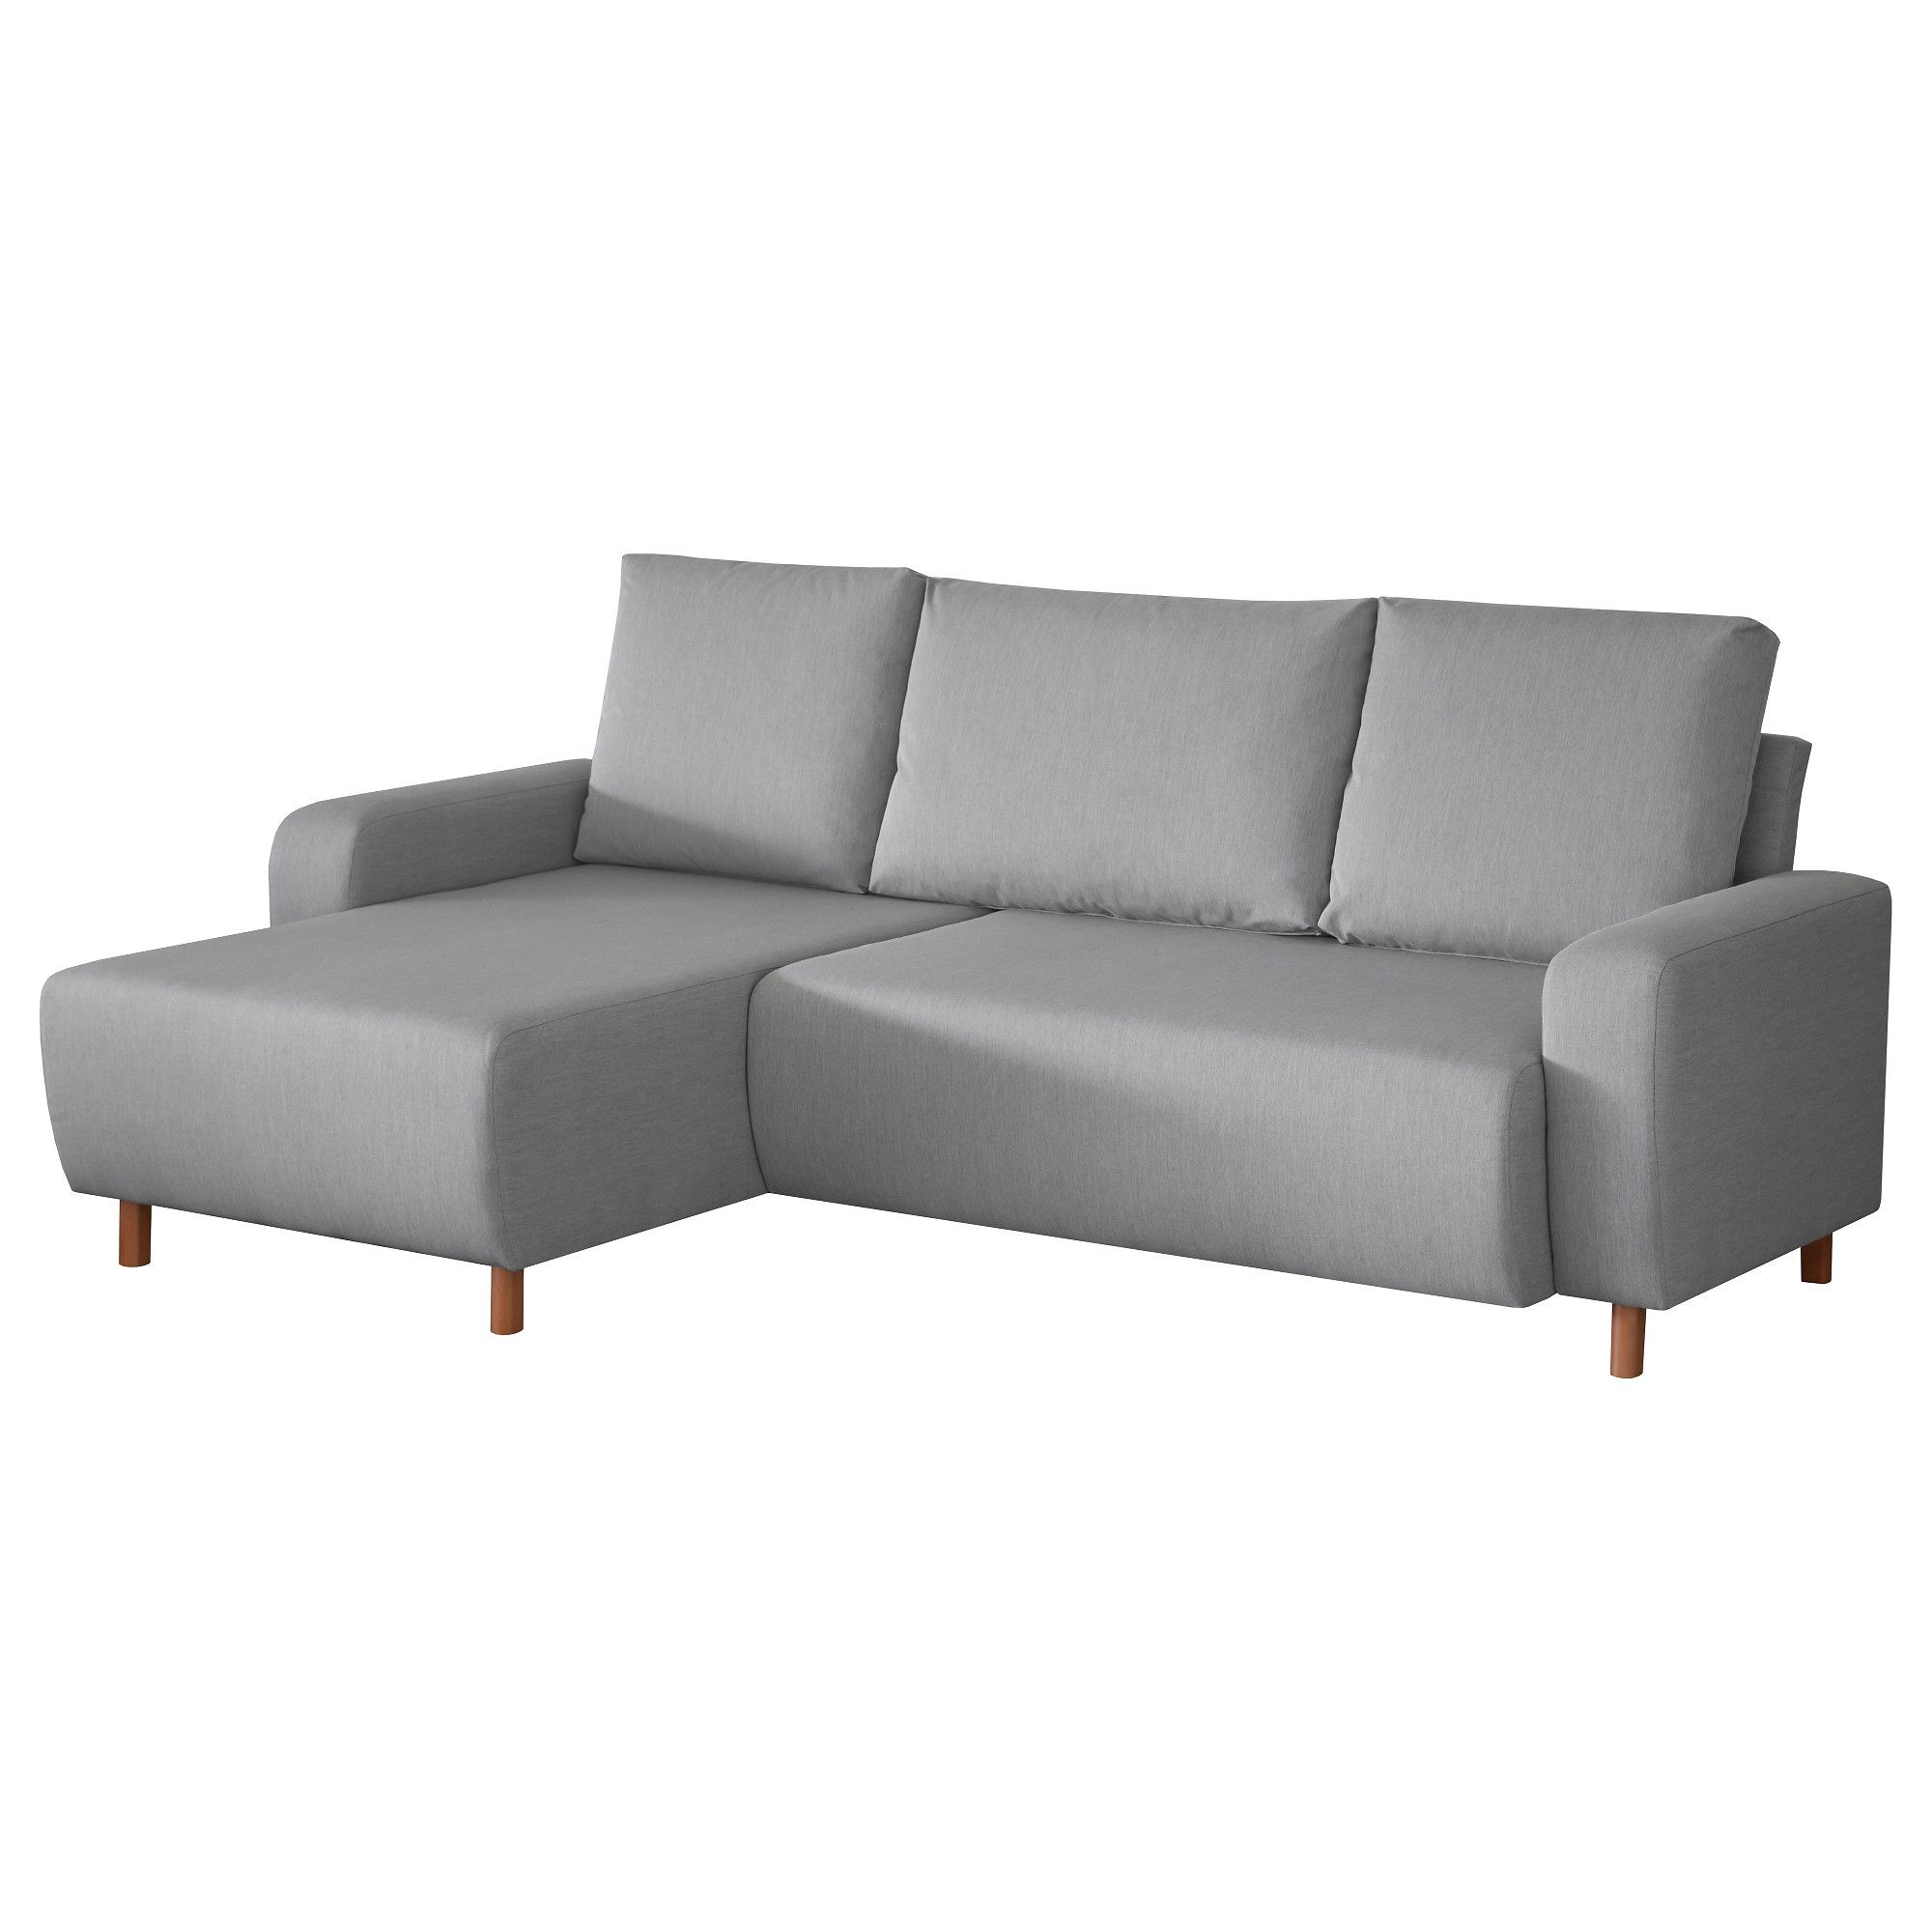 Ikea 2er Sofa Grau Pin By Ladendirekt On Sofas & Couches | Sofa, Couch, Ikea